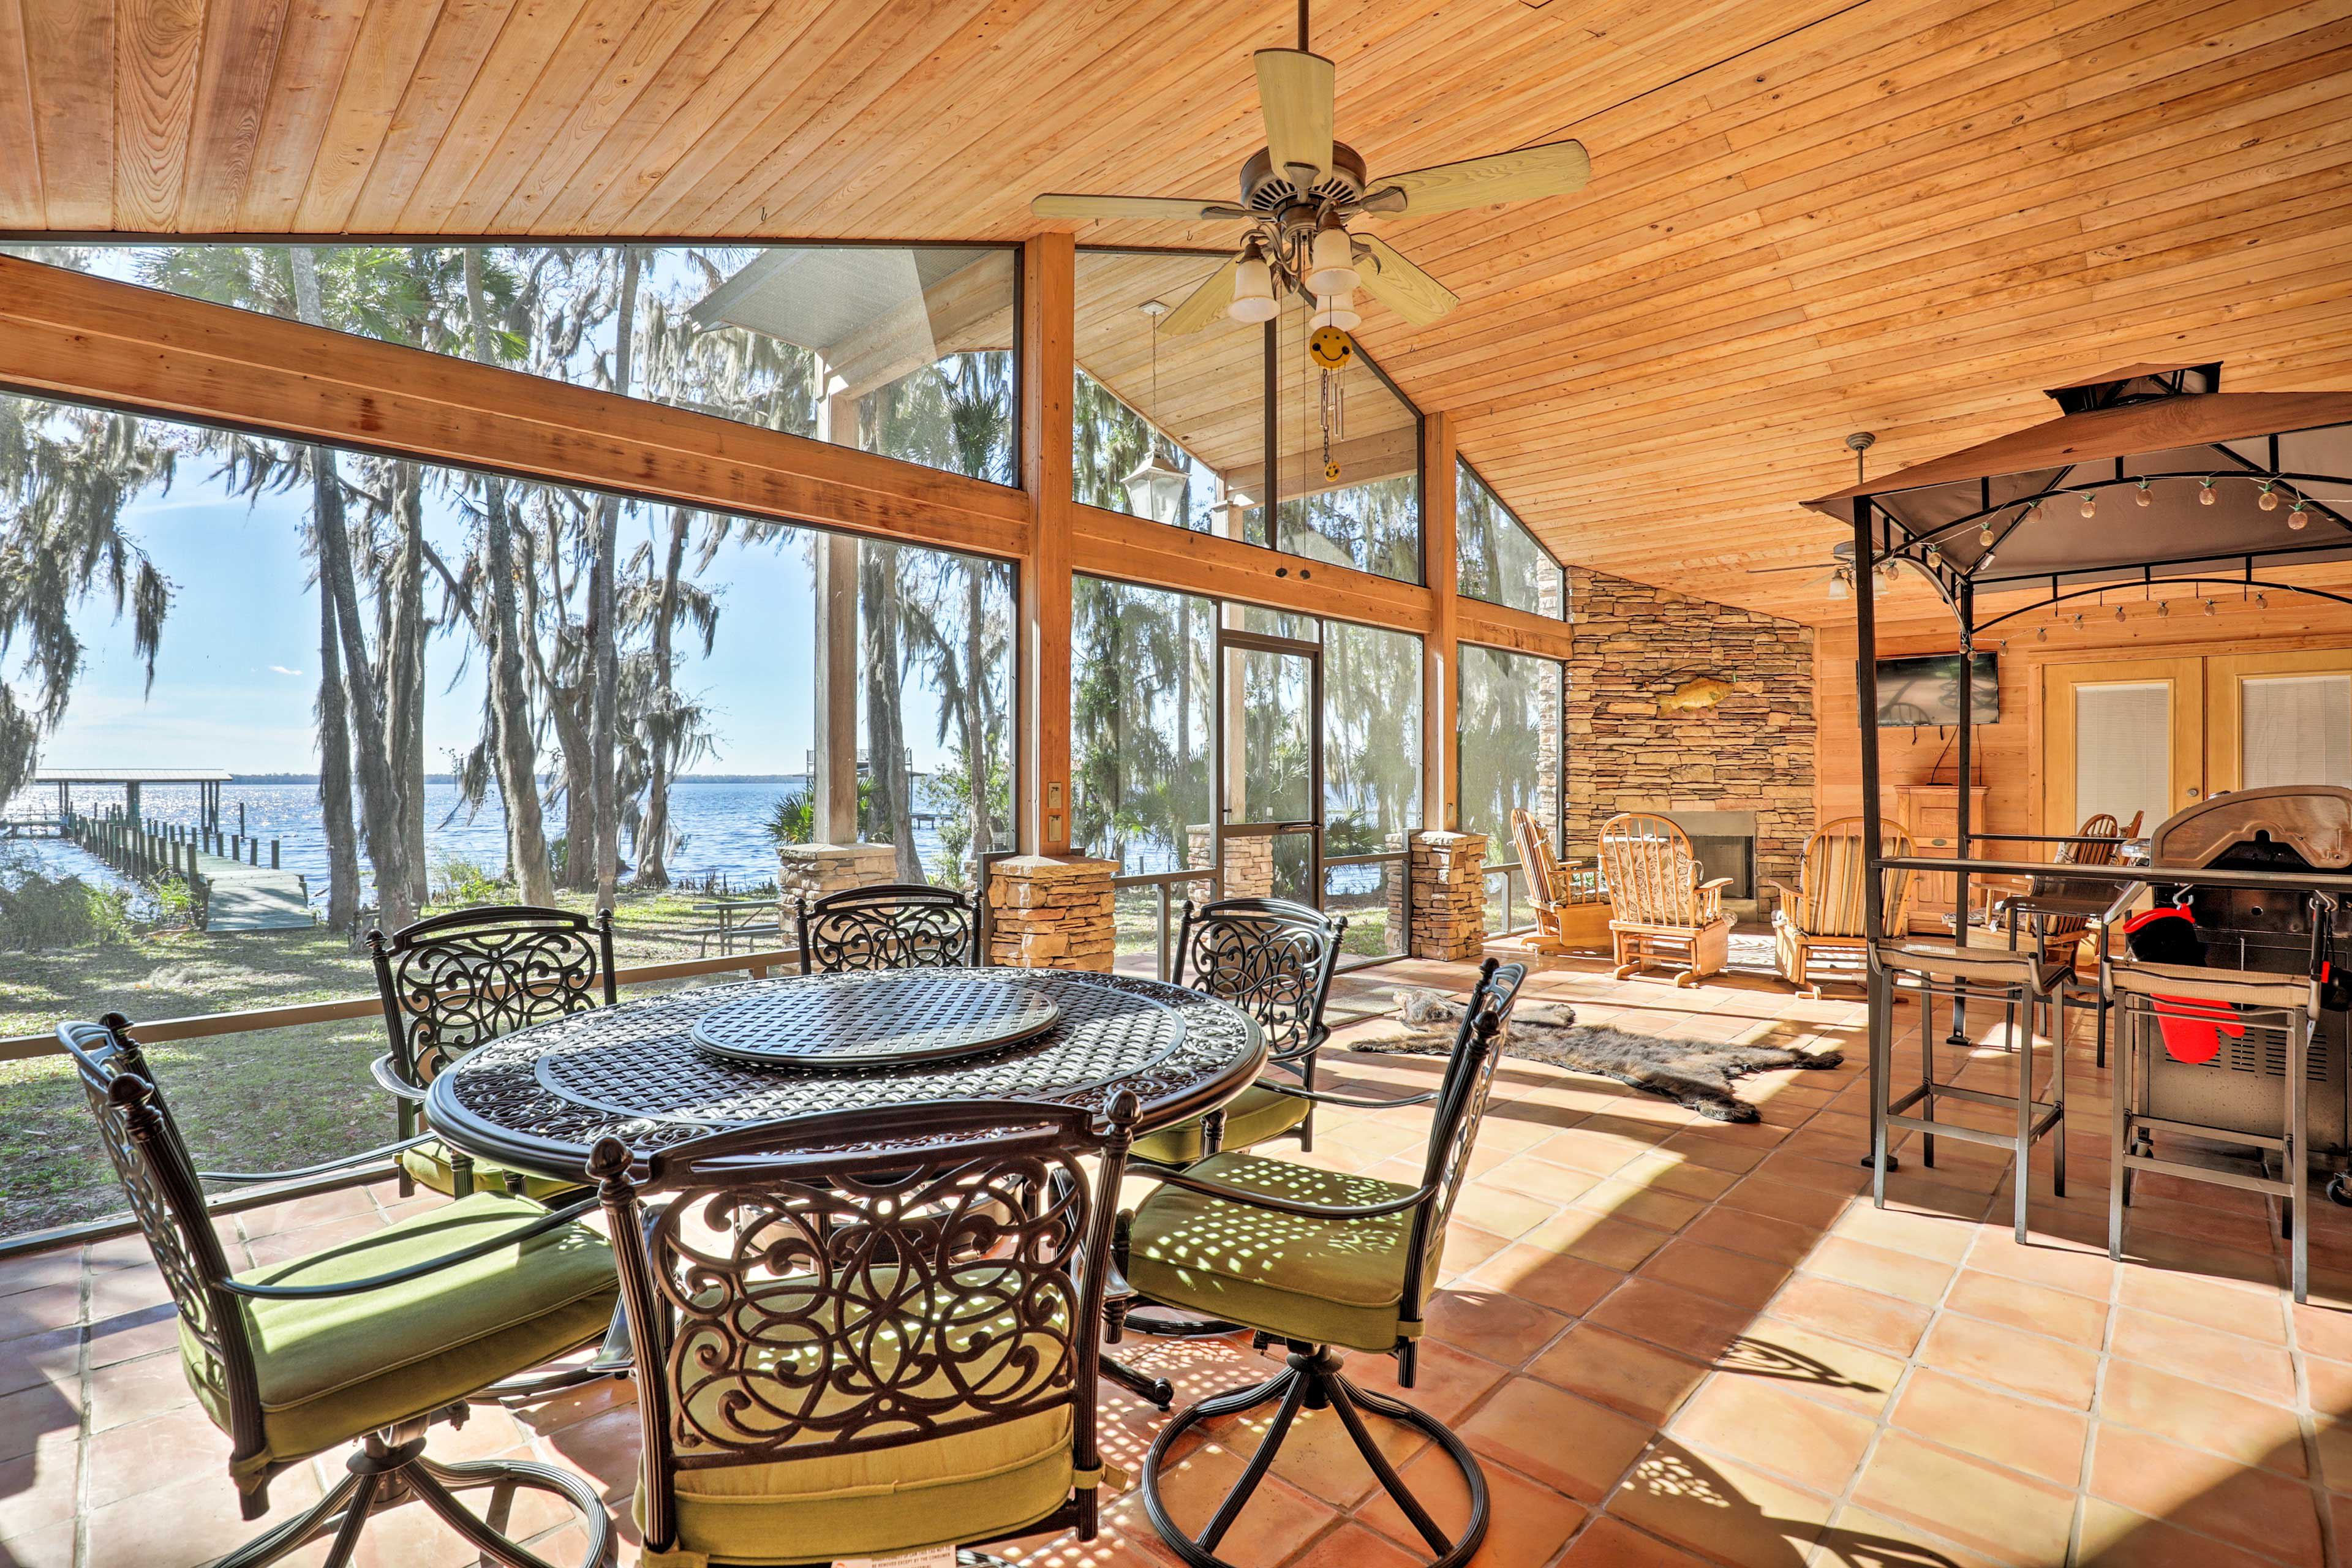 Bring friends and family along to this luxury 8-person vacation rental house!